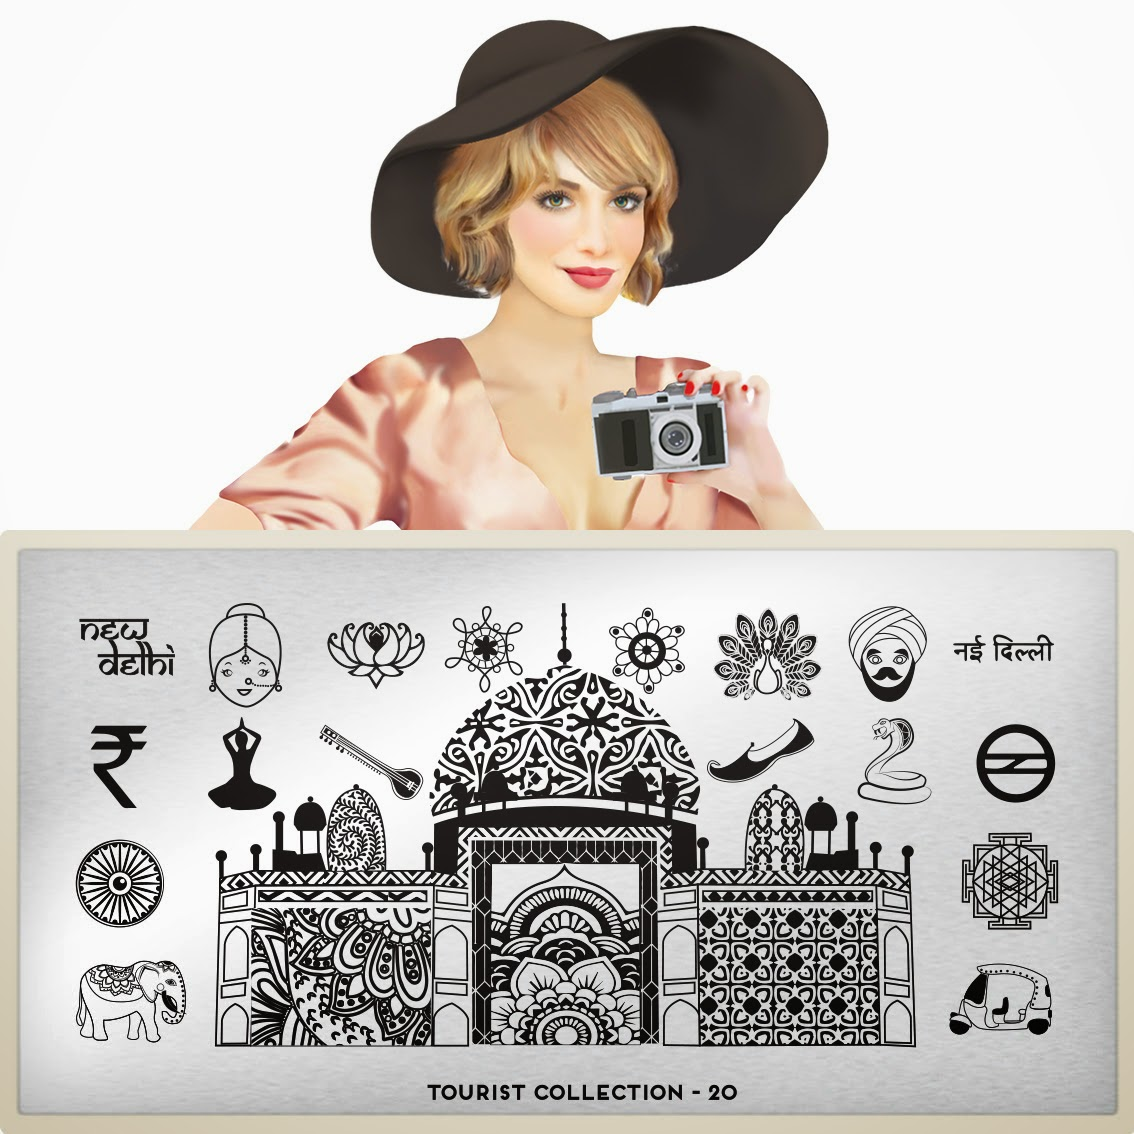 Lacquer Lockdown - MoYou London, Tourist Collection, MoYou London Toursit collectin.  Tourist 18, Tourist 19, Tourist 20, Tourist 21, new nail art plates 2014, new nail art image plates 2014, new nail art plates 2014, paris nail art, france nail art, delhi nail art, middle eastern nail art, austrailia nail art, syndey nail art, cute nail art ideas, diy nail art, nail art stamping blog